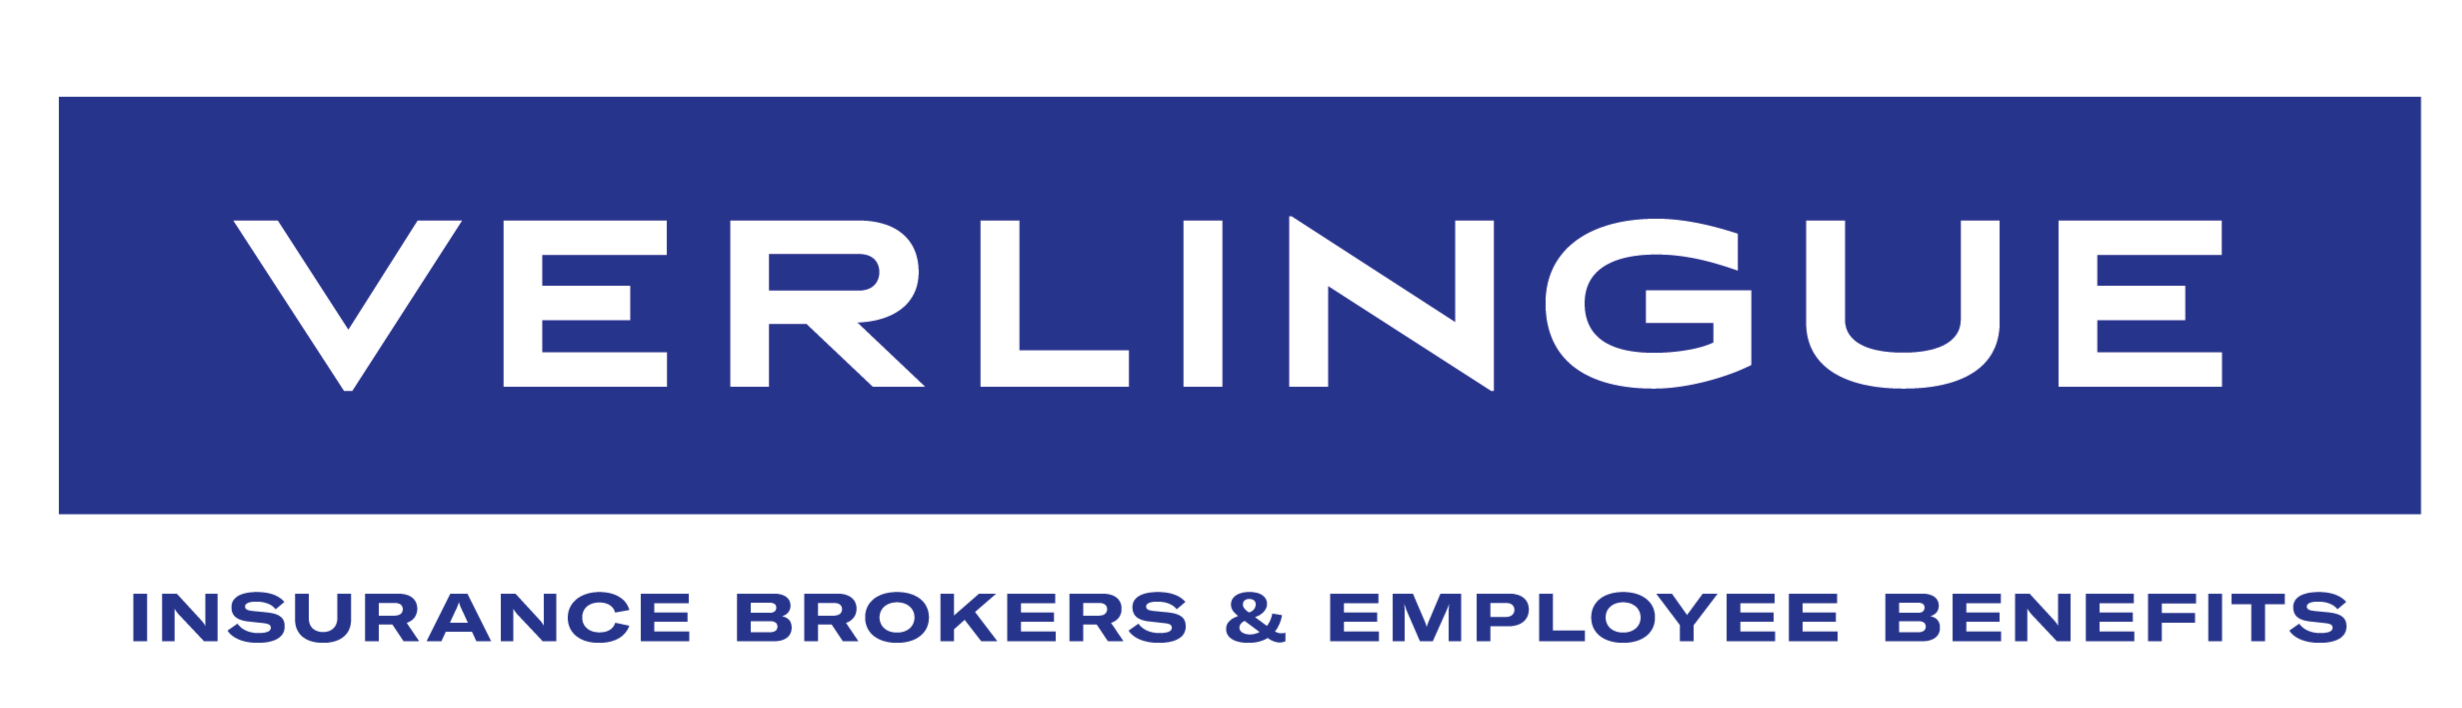 191015_Verlingue_Logotype_UK_CMJN_edited